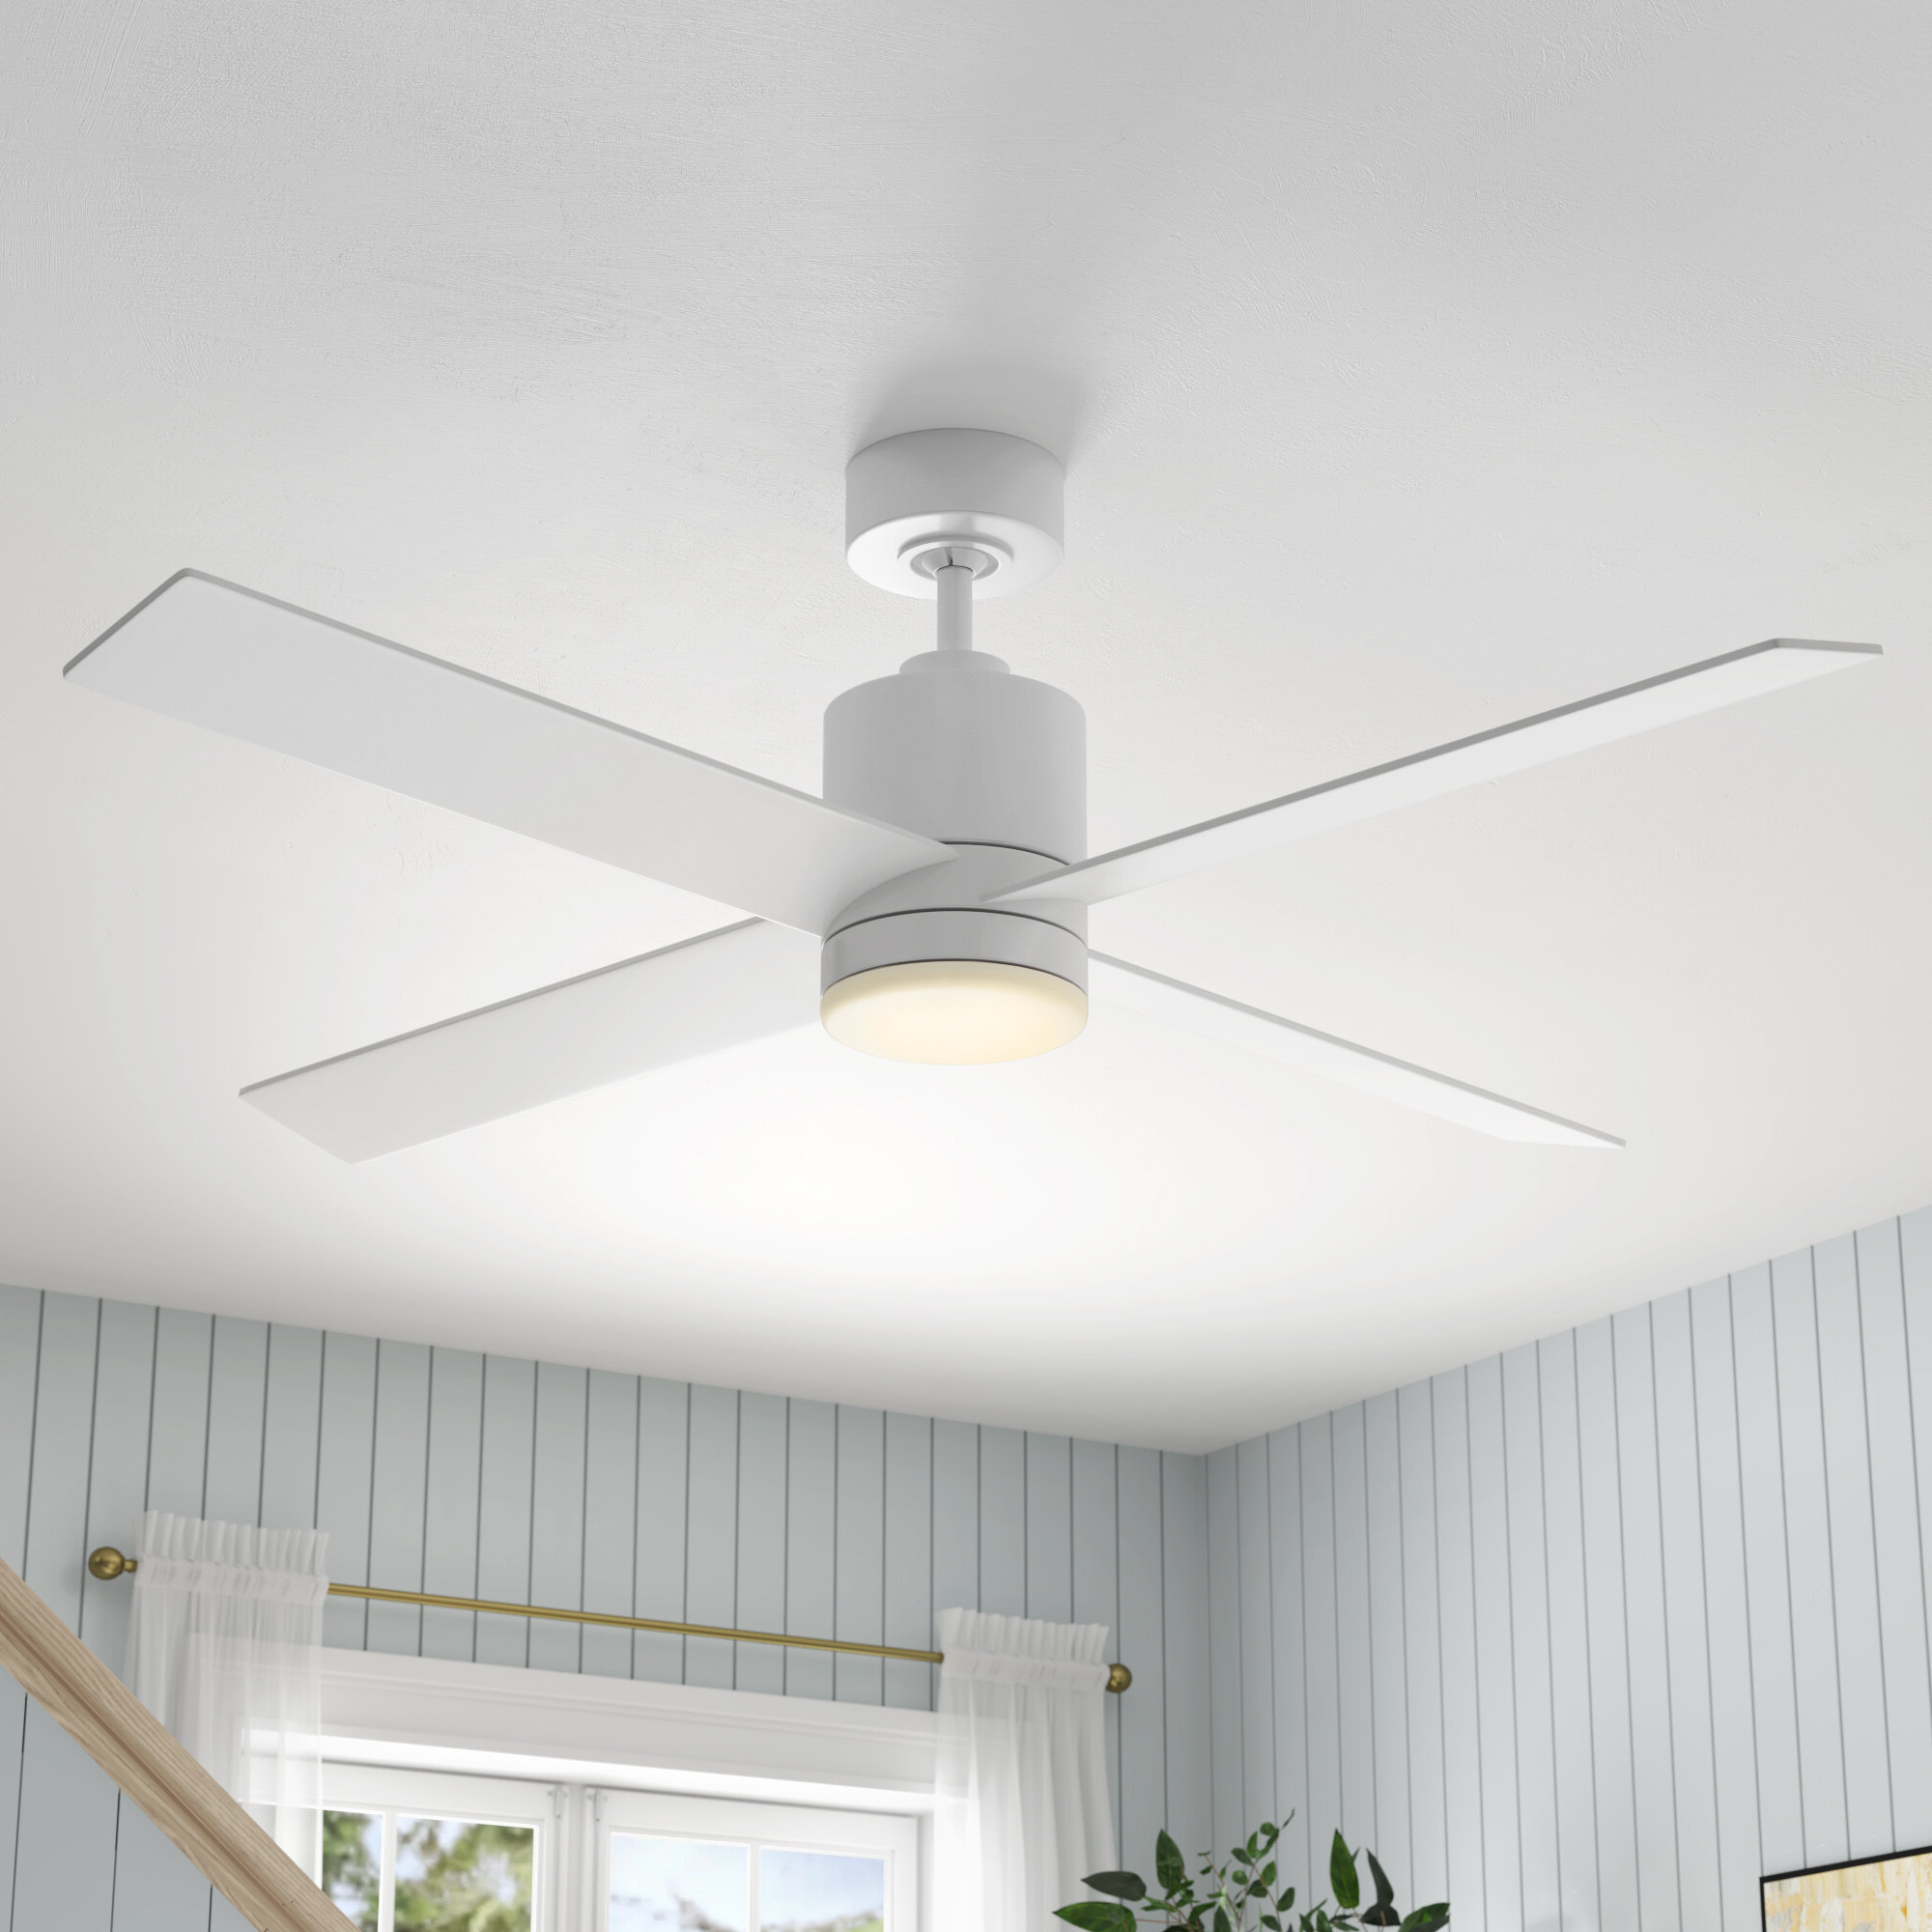 """Fashionable Dempsey Low Profile 4 Blade Ceiling Fans With Remote Inside 52"""" Rinke 4 Blade Ceiling Fan With Remote, Light Kit Included (View 13 of 20)"""